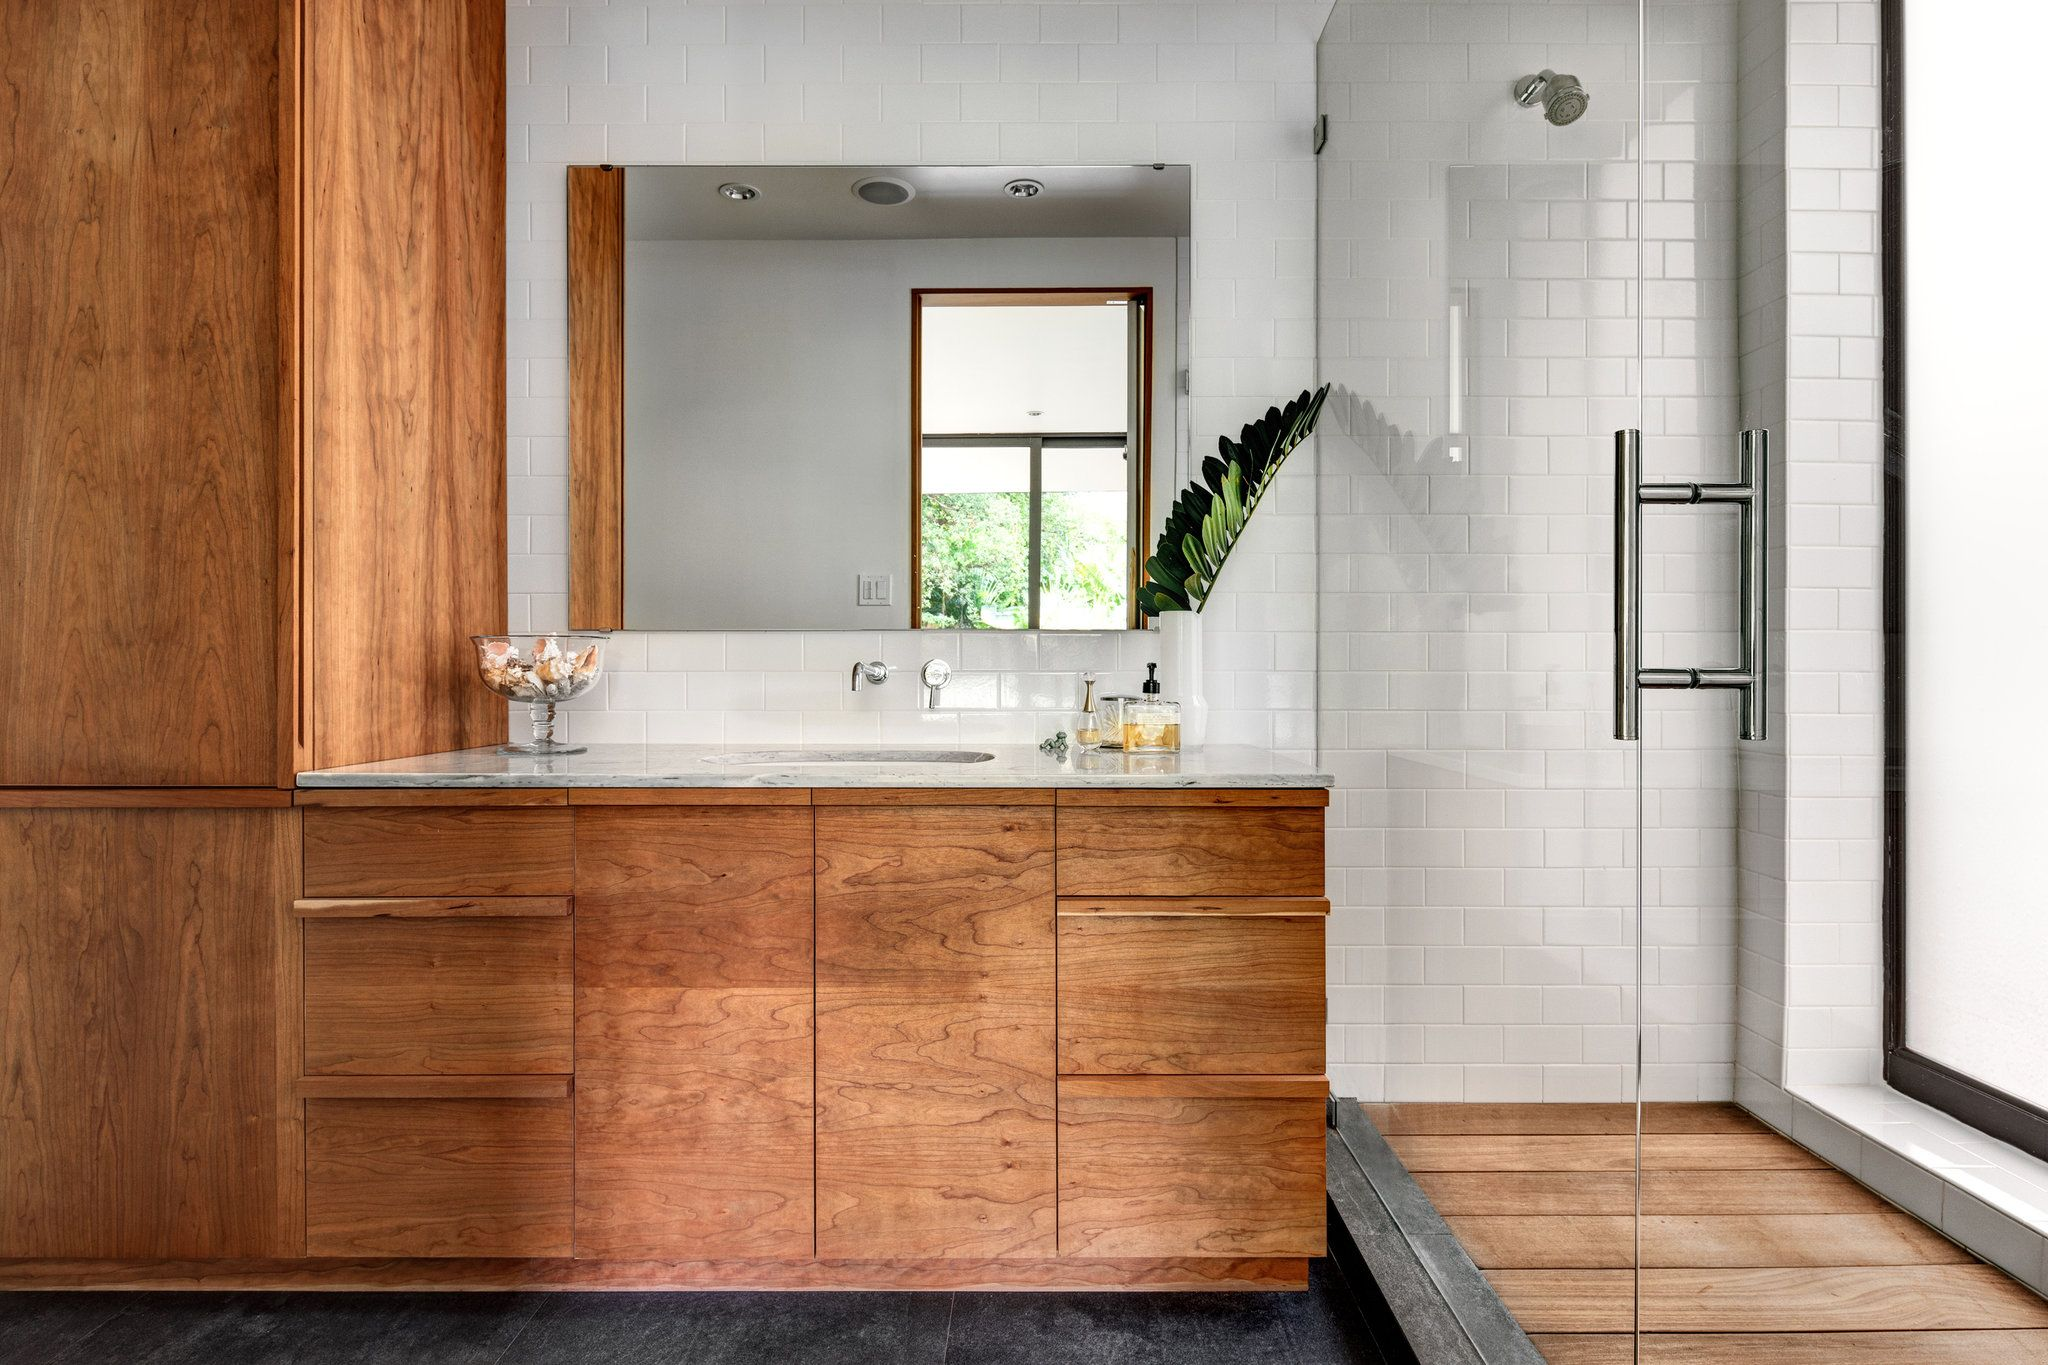 How to build a bath with your own hands